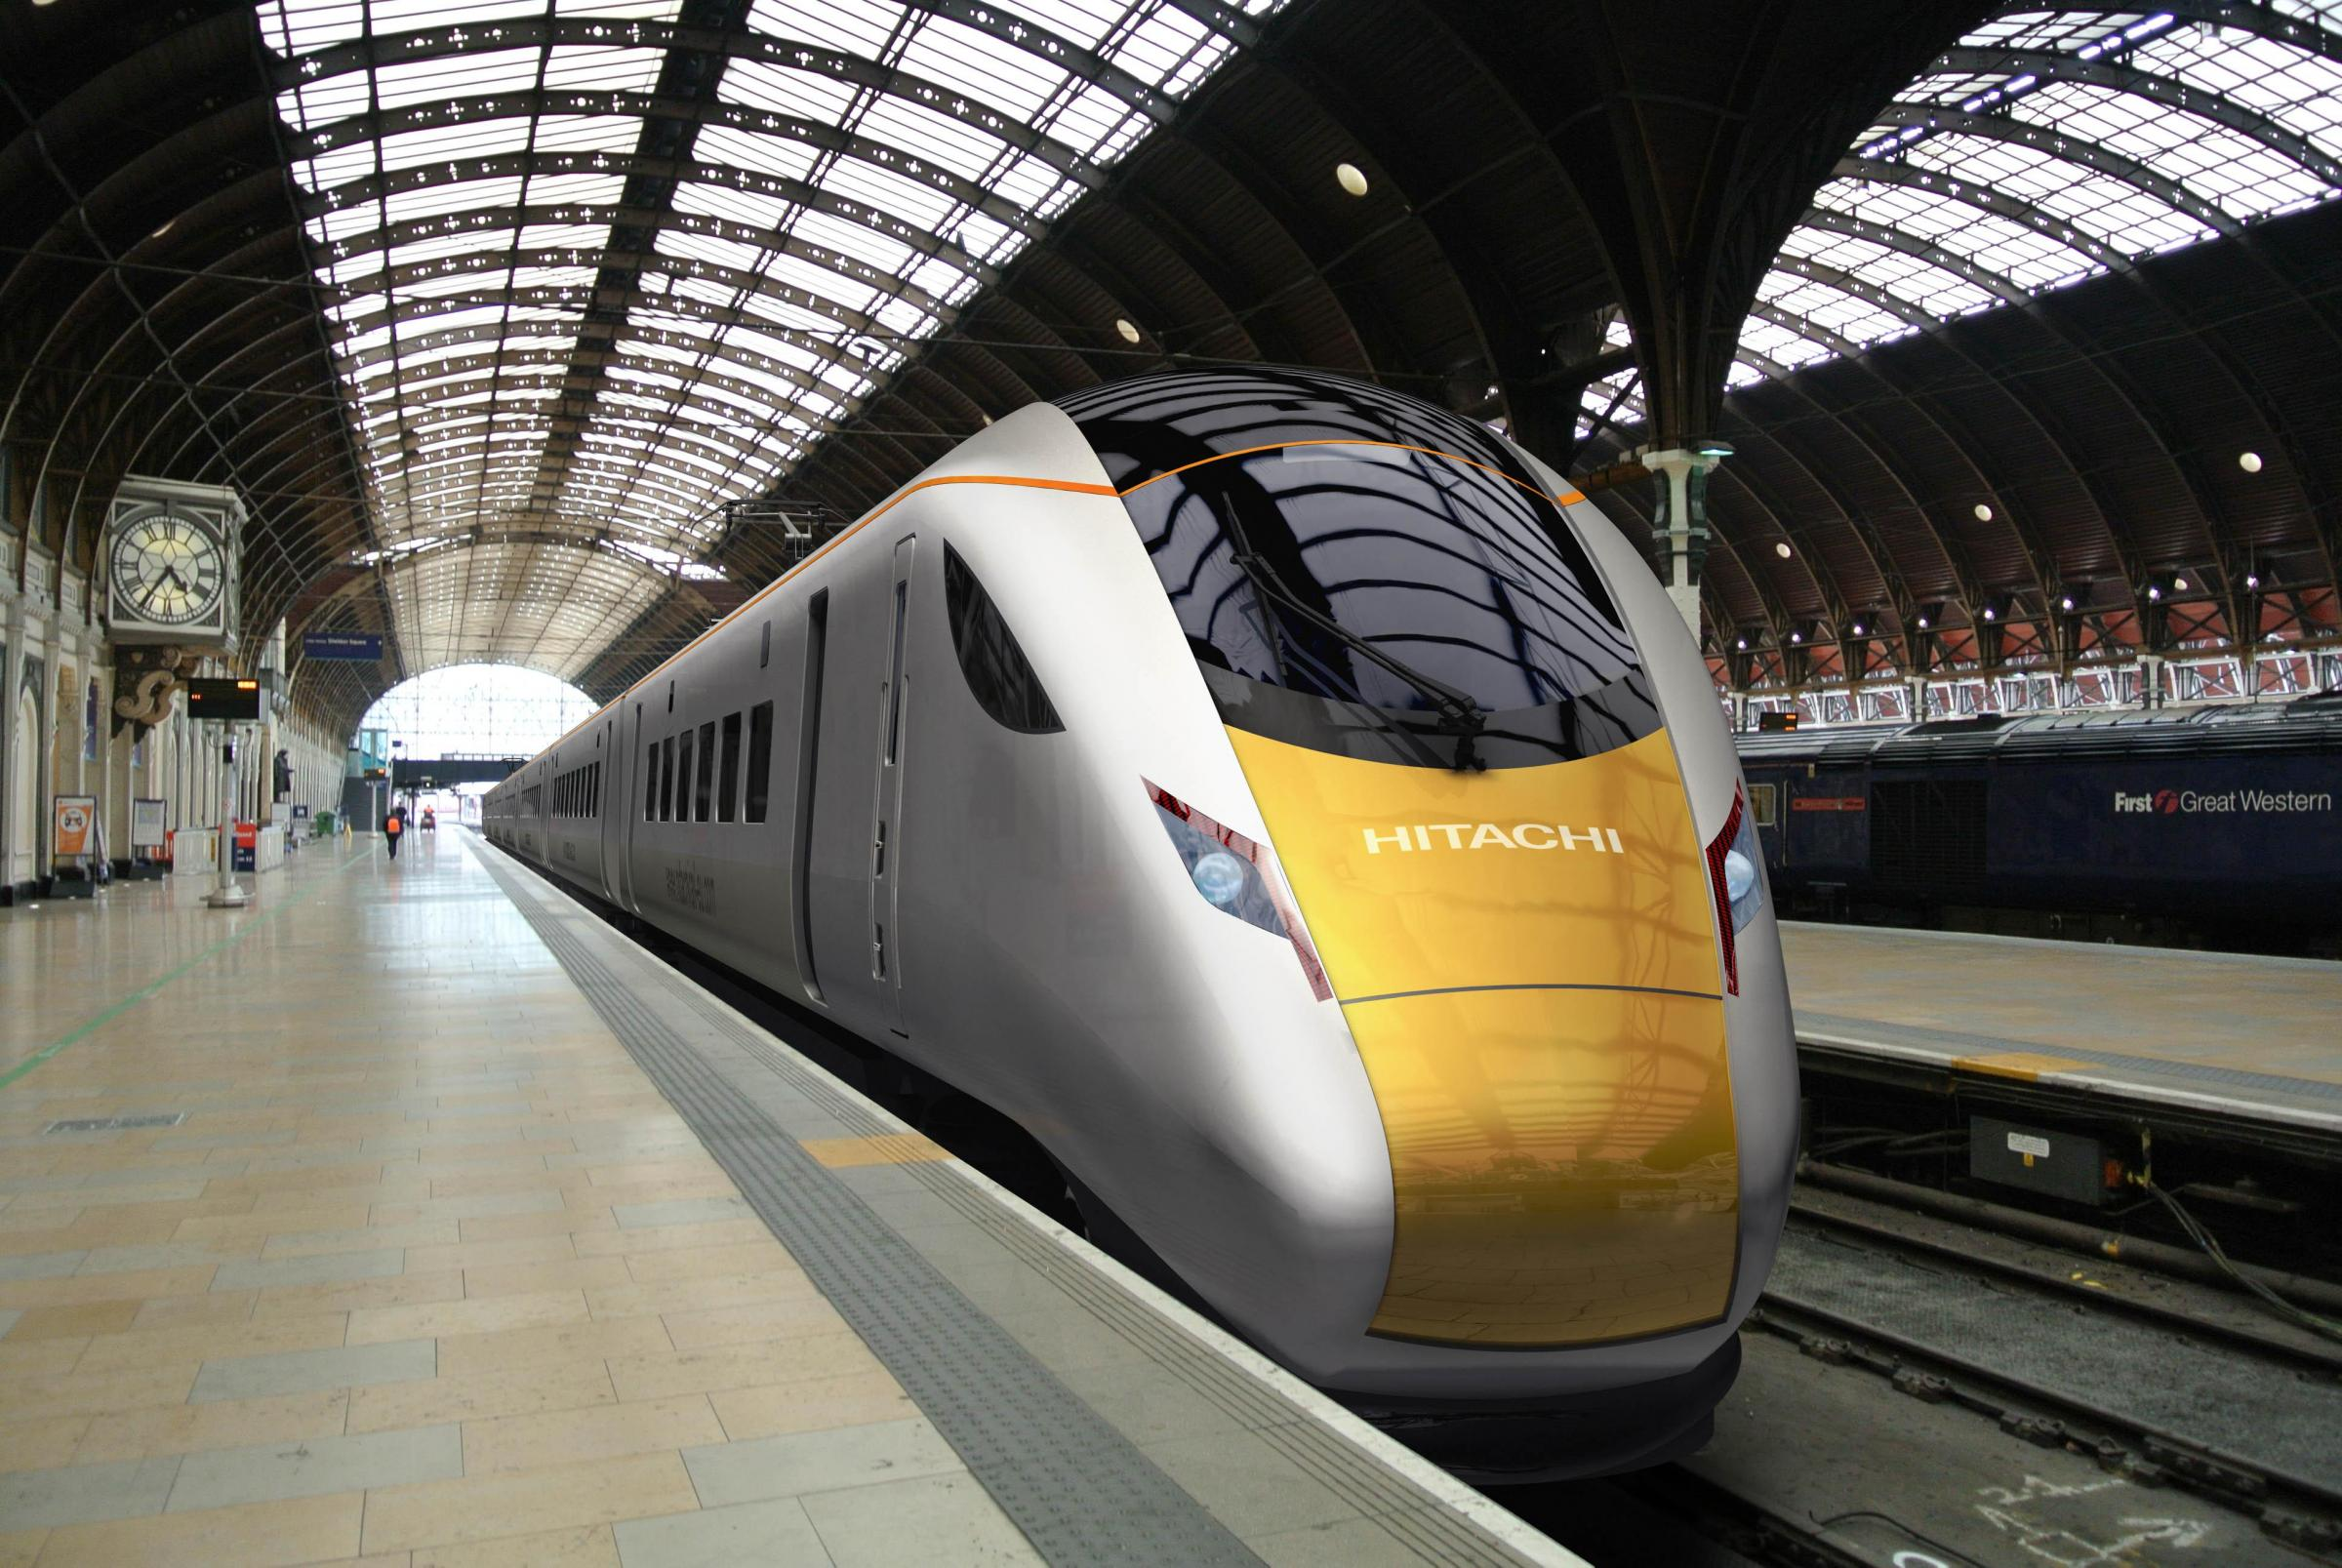 Hitachi Rail Europe has reaffirmed its commitment to the North-East after losing out to Bombardier on the £1bn Crossrail contract